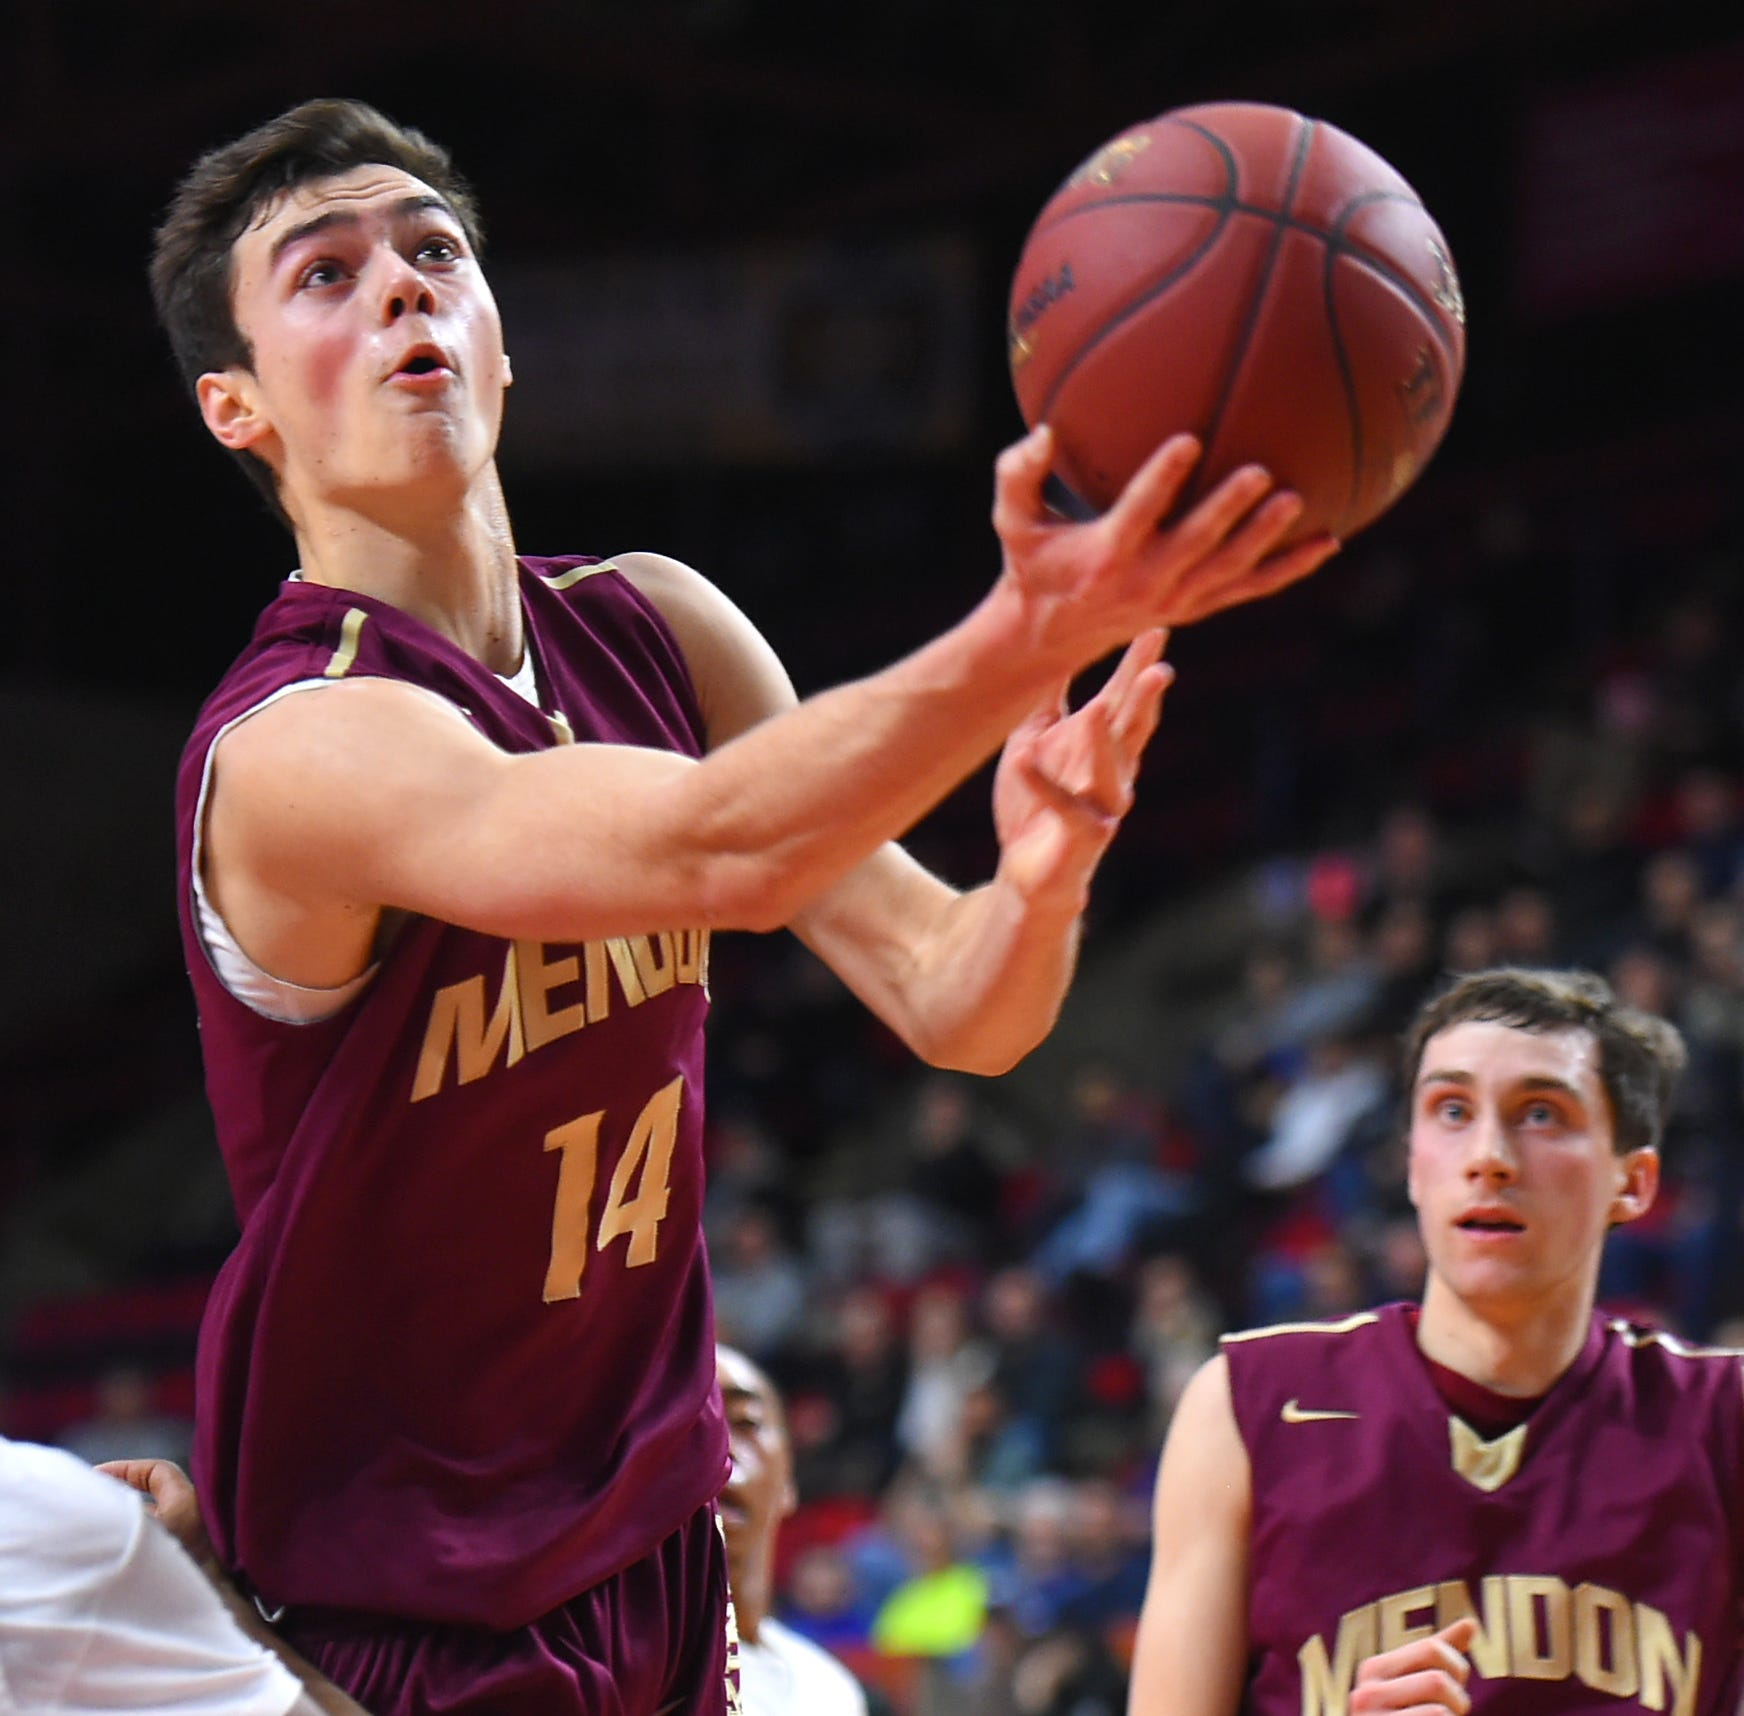 Pittsford Mendon's perfect season crumbles in final minutes of Class A state championship